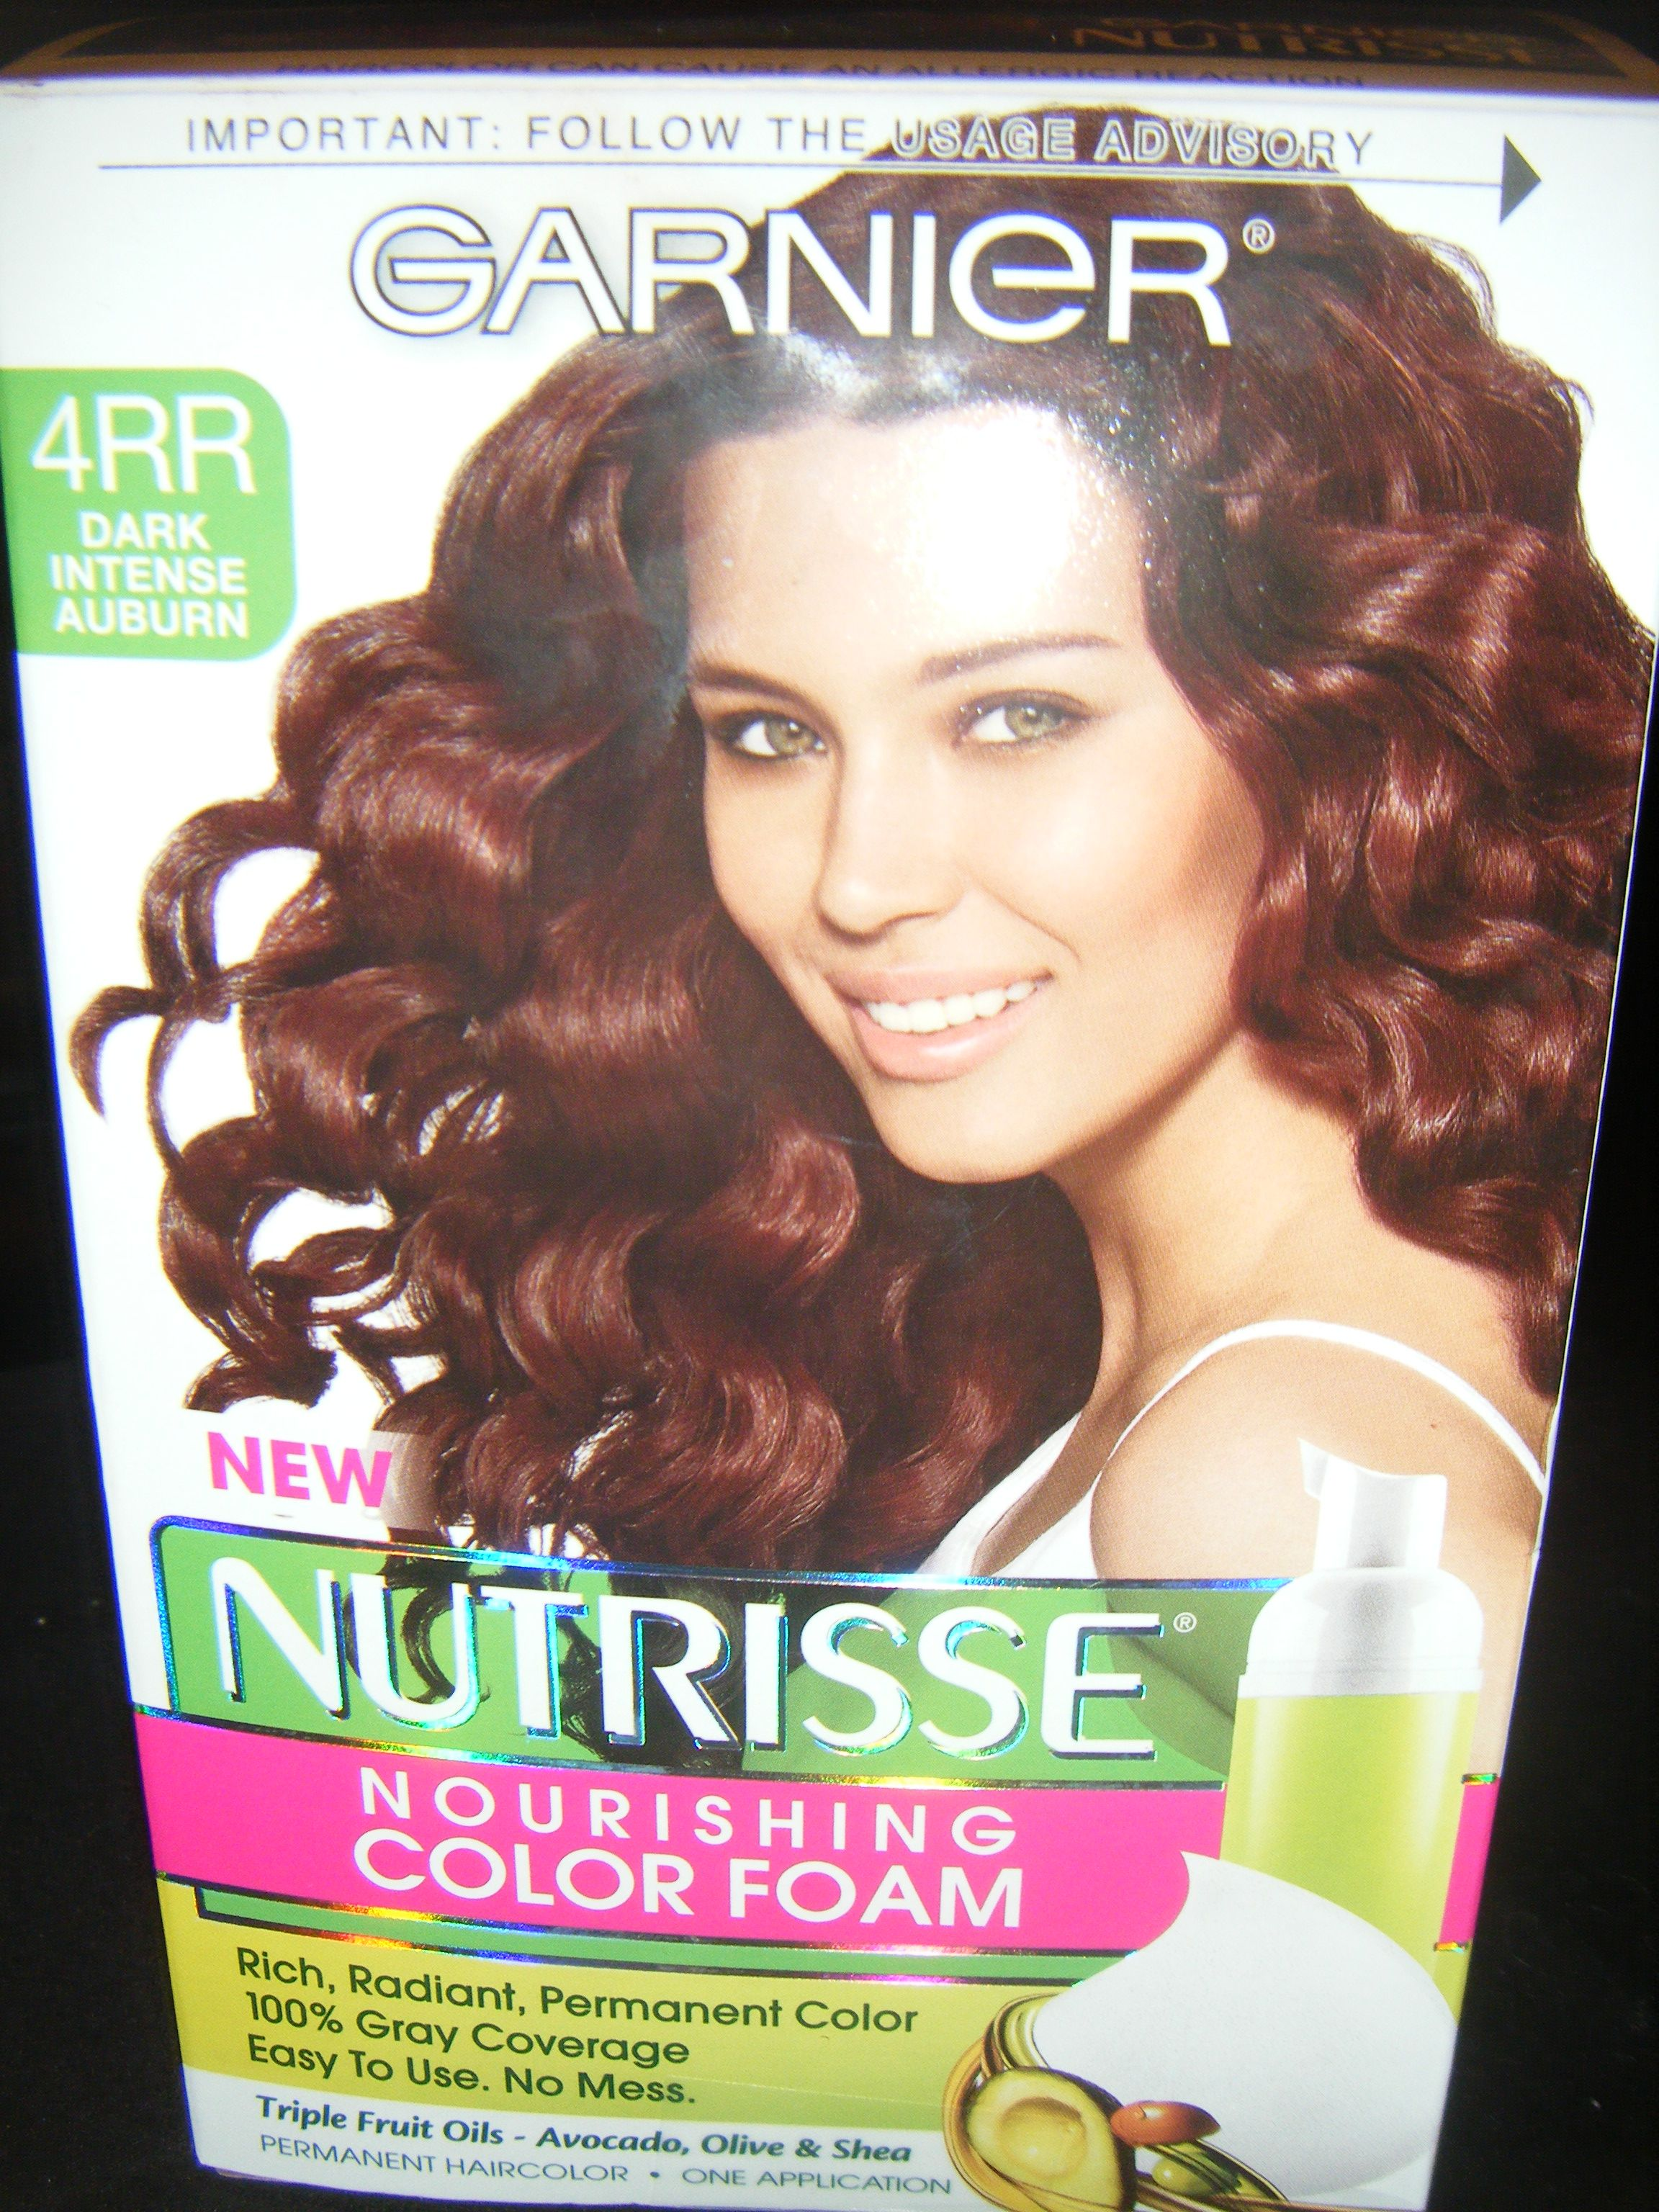 Dark Auburn Hair Color Garnier Nutrisse Nourishing Foam 4rr Intense